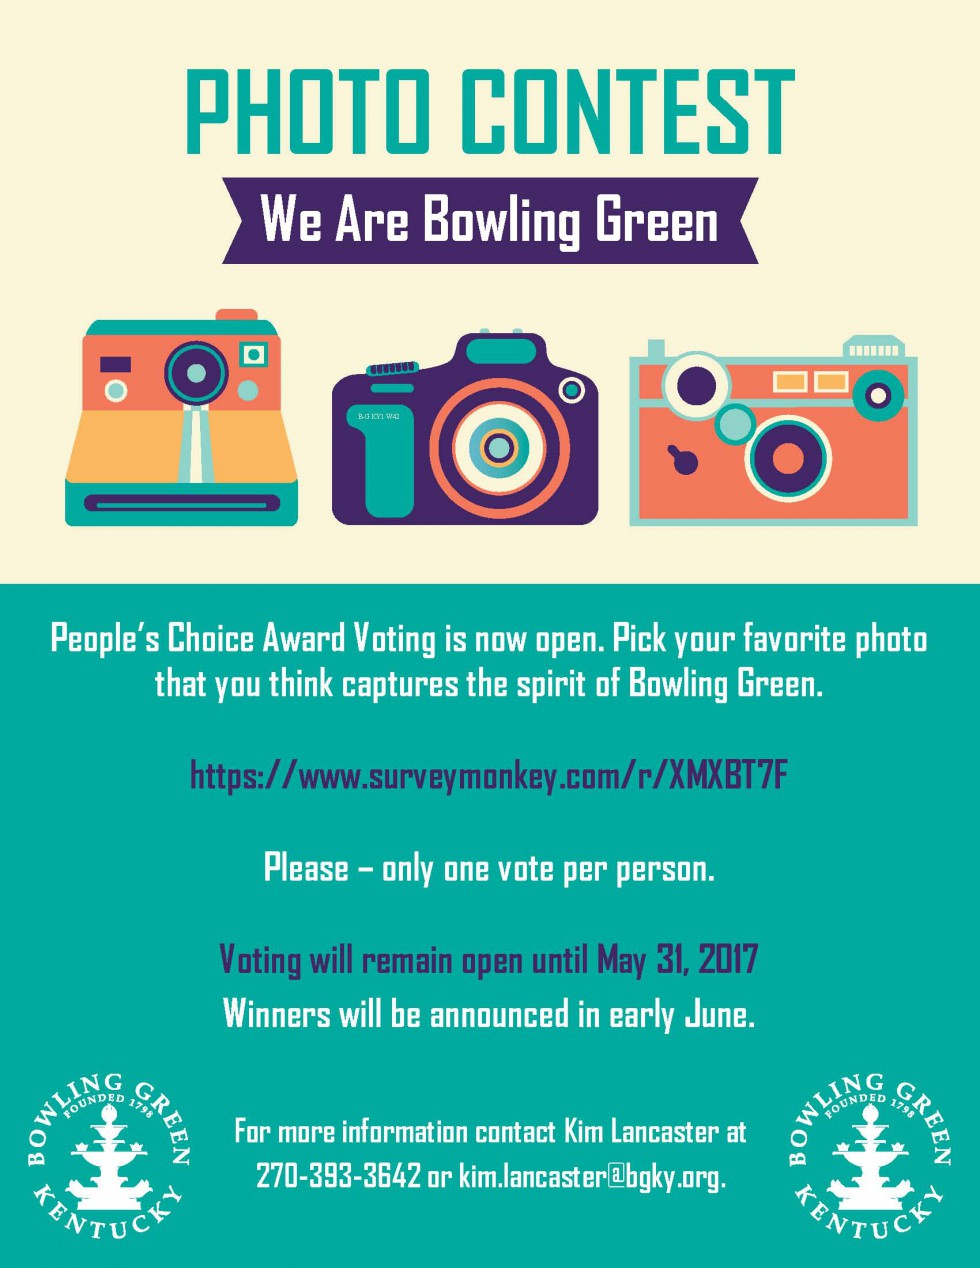 Vote Online Now for your Favorite We Are BG Photo Submission